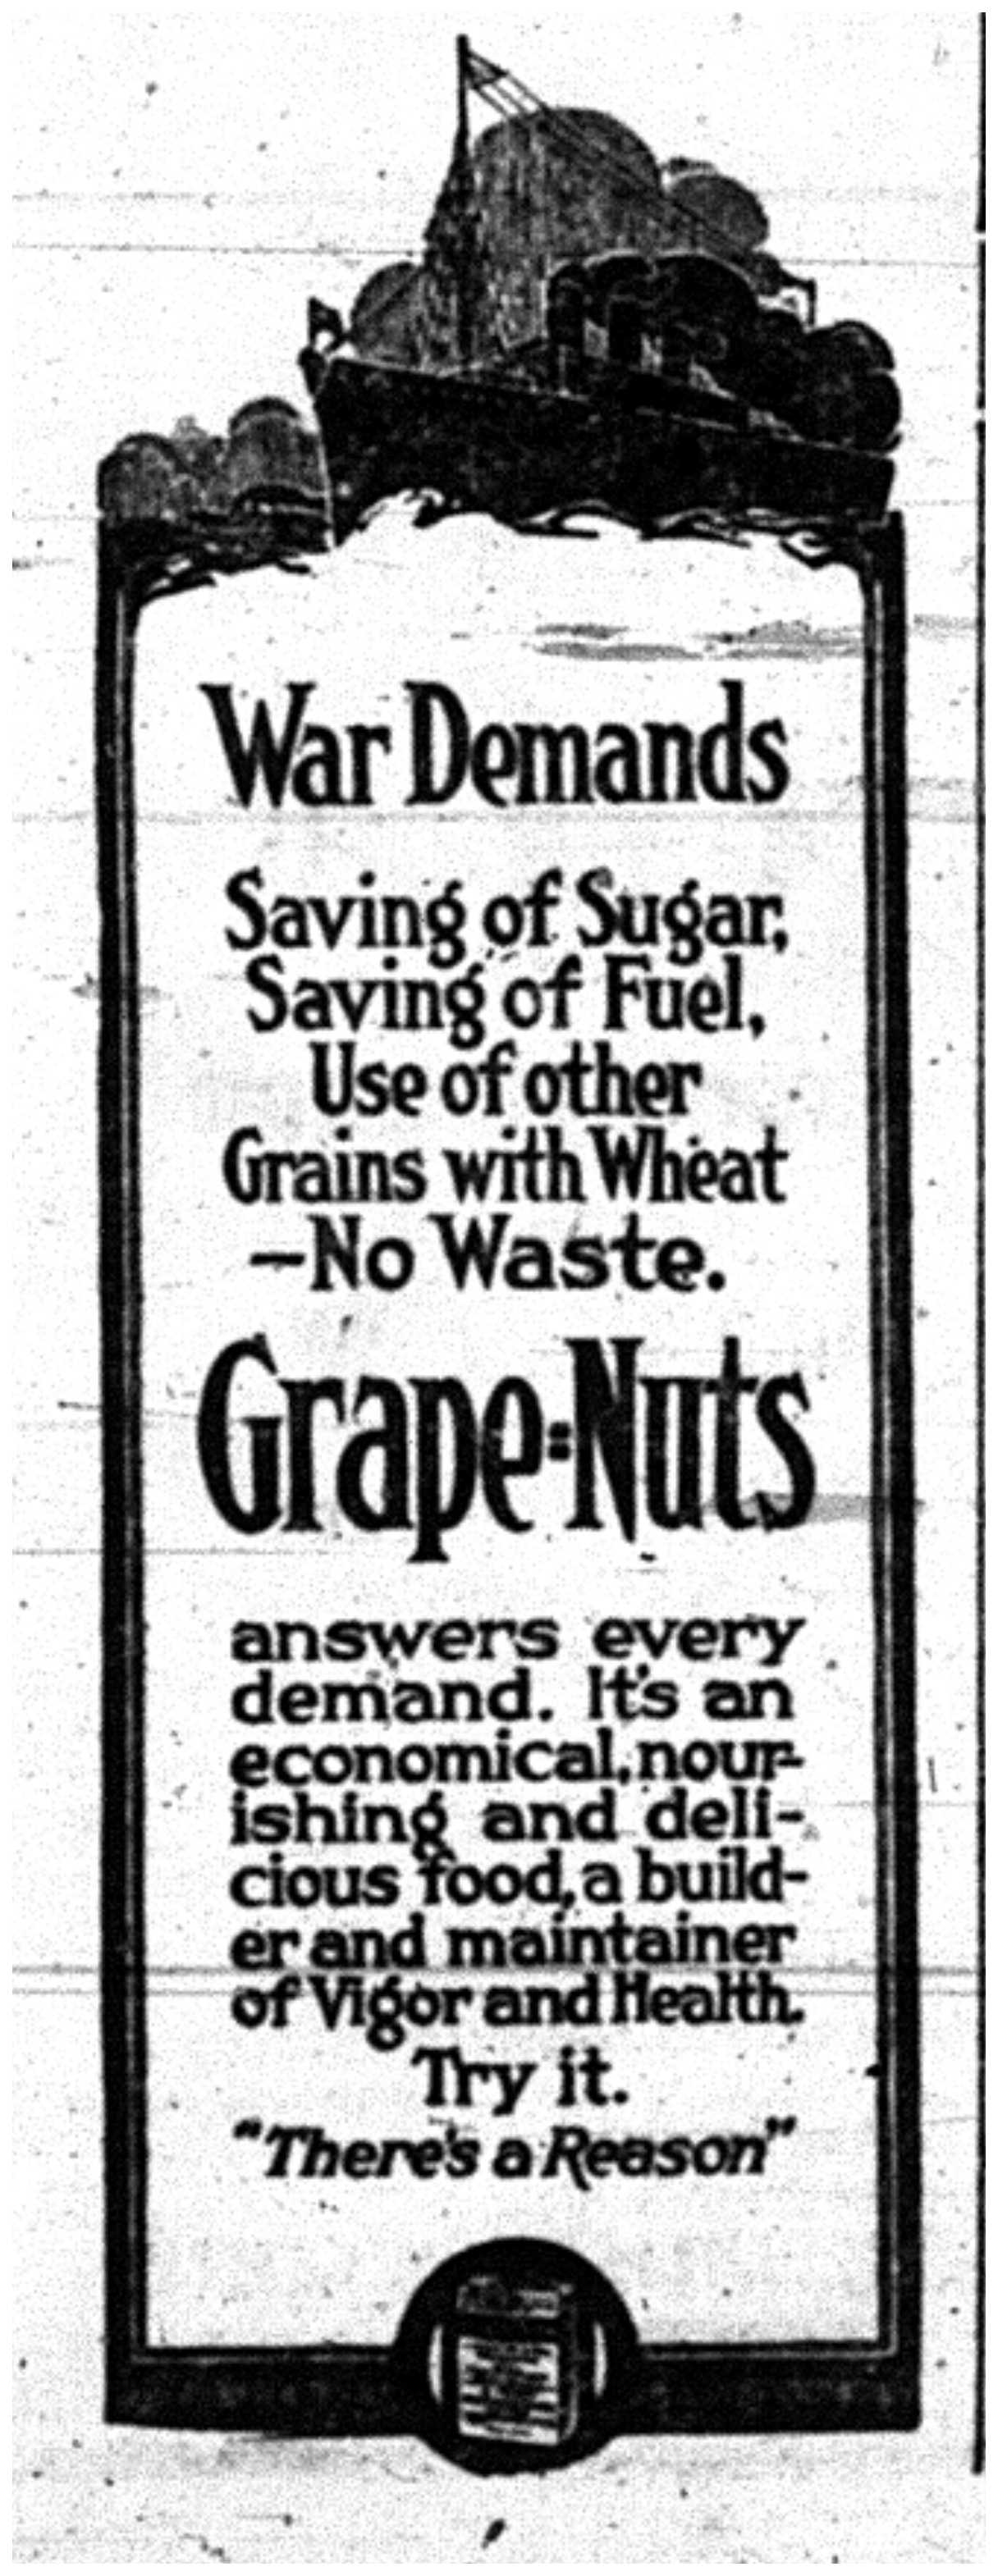 """War Demands Saving of Sugar, Saving of Fuel, Use of other Grains with Wheat - No Waste"""